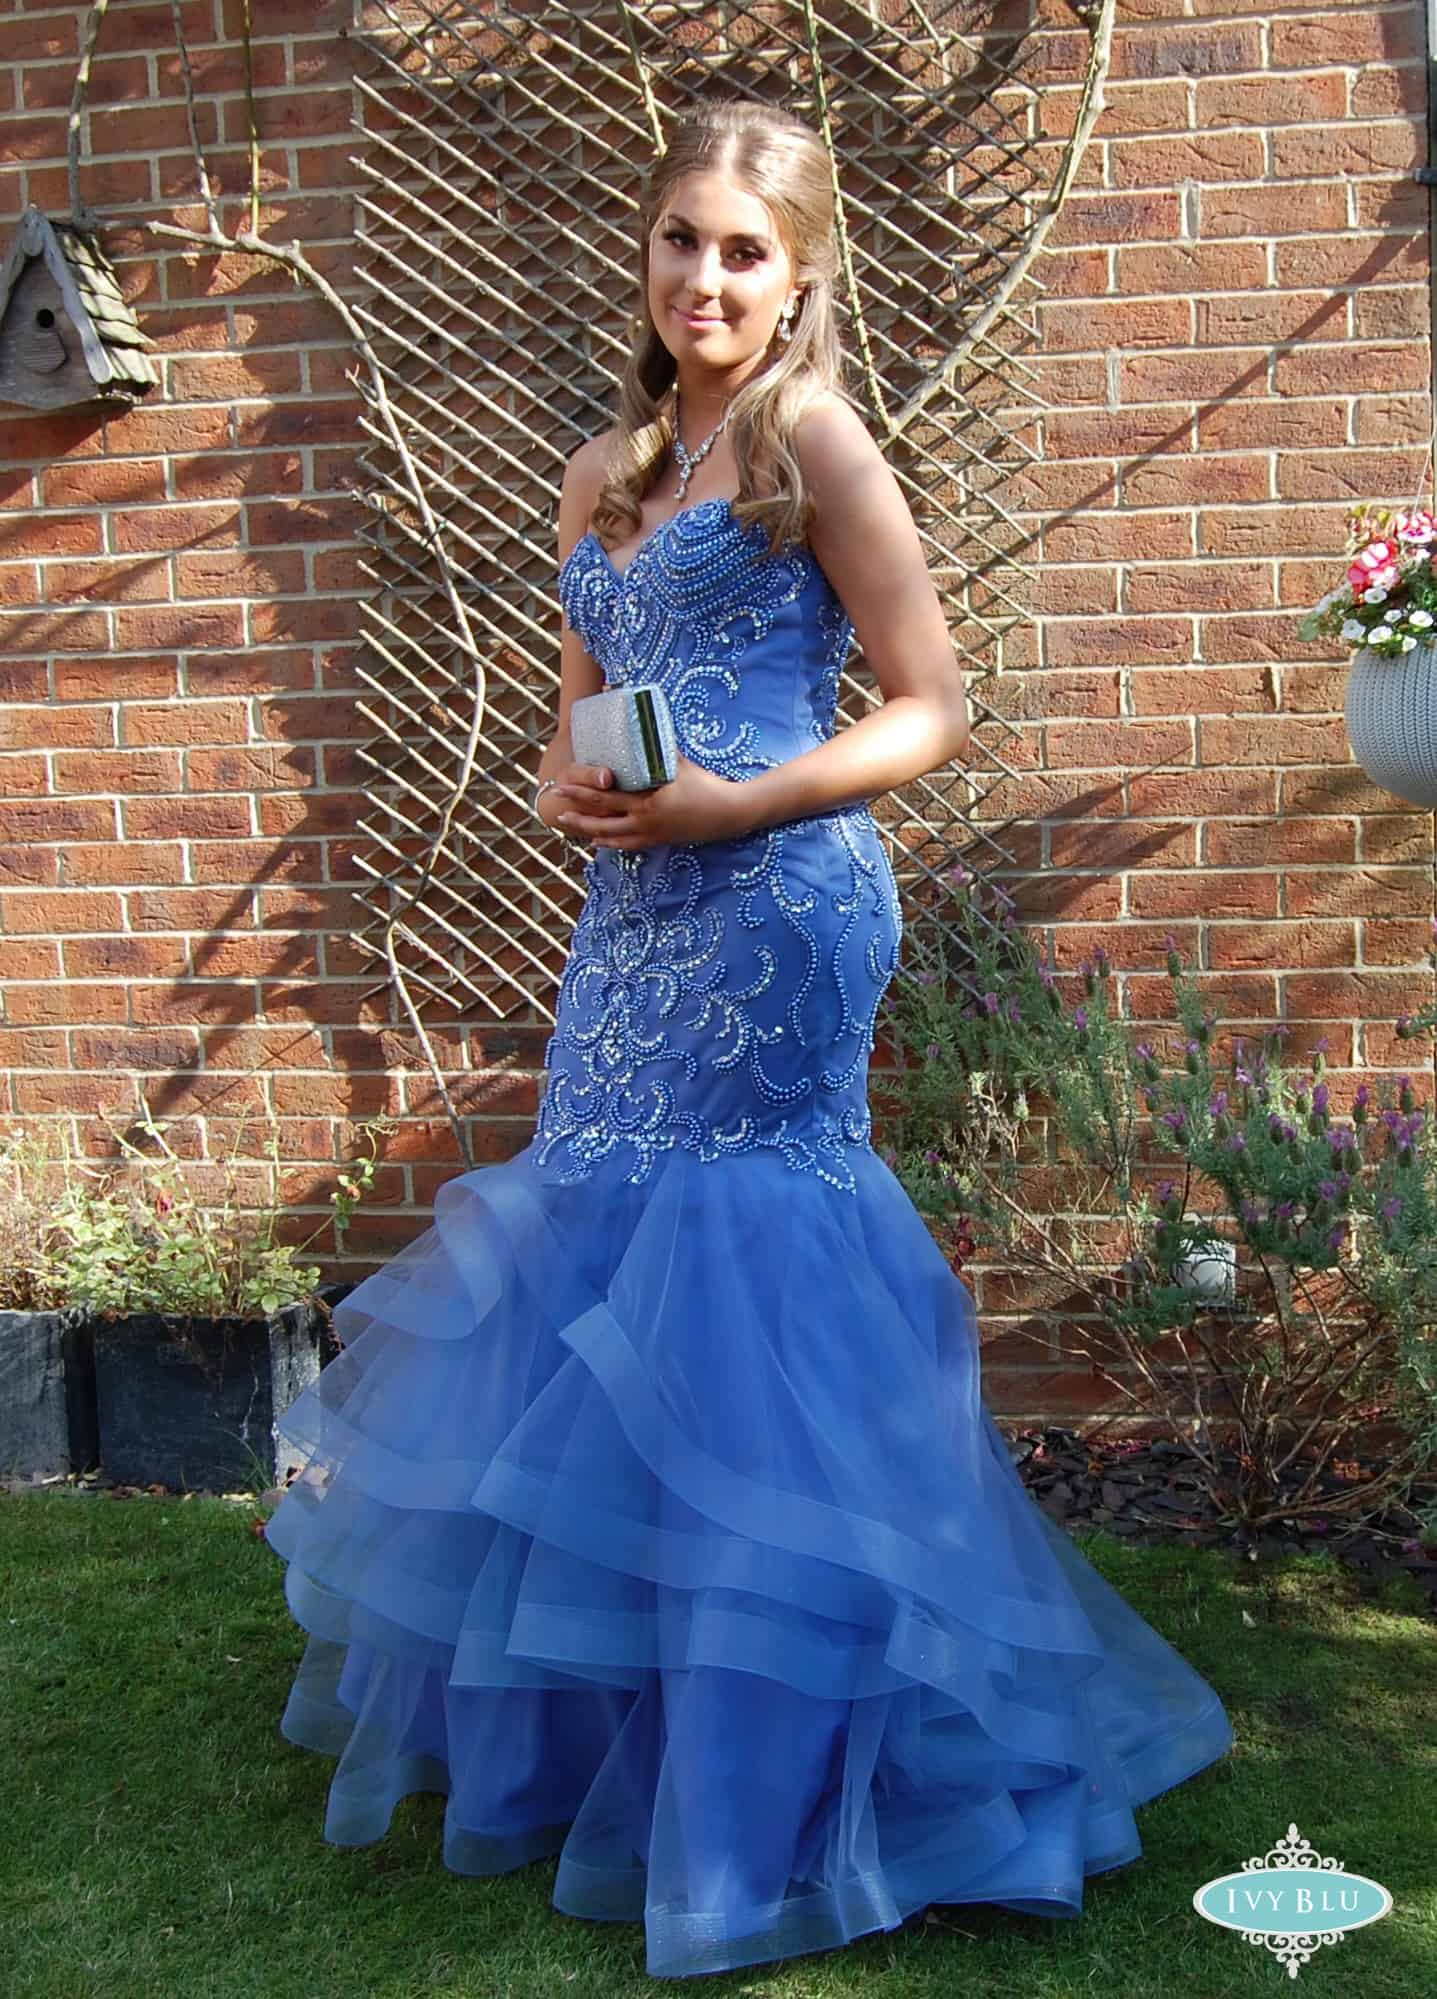 Prom Girl In Blue Dress With Ruffles